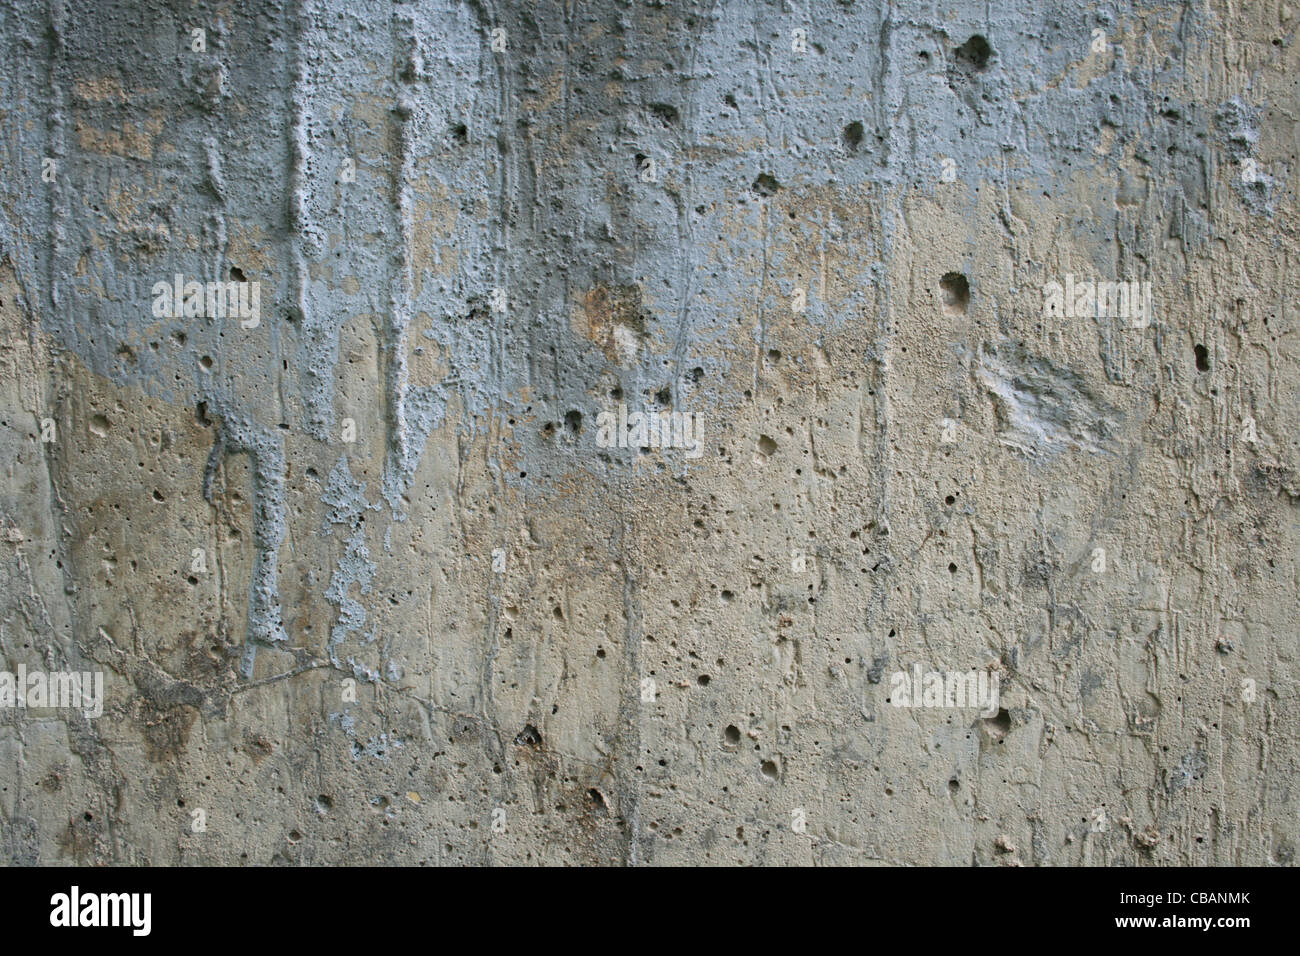 grunge style industrial cement texture with stains - Stock Image